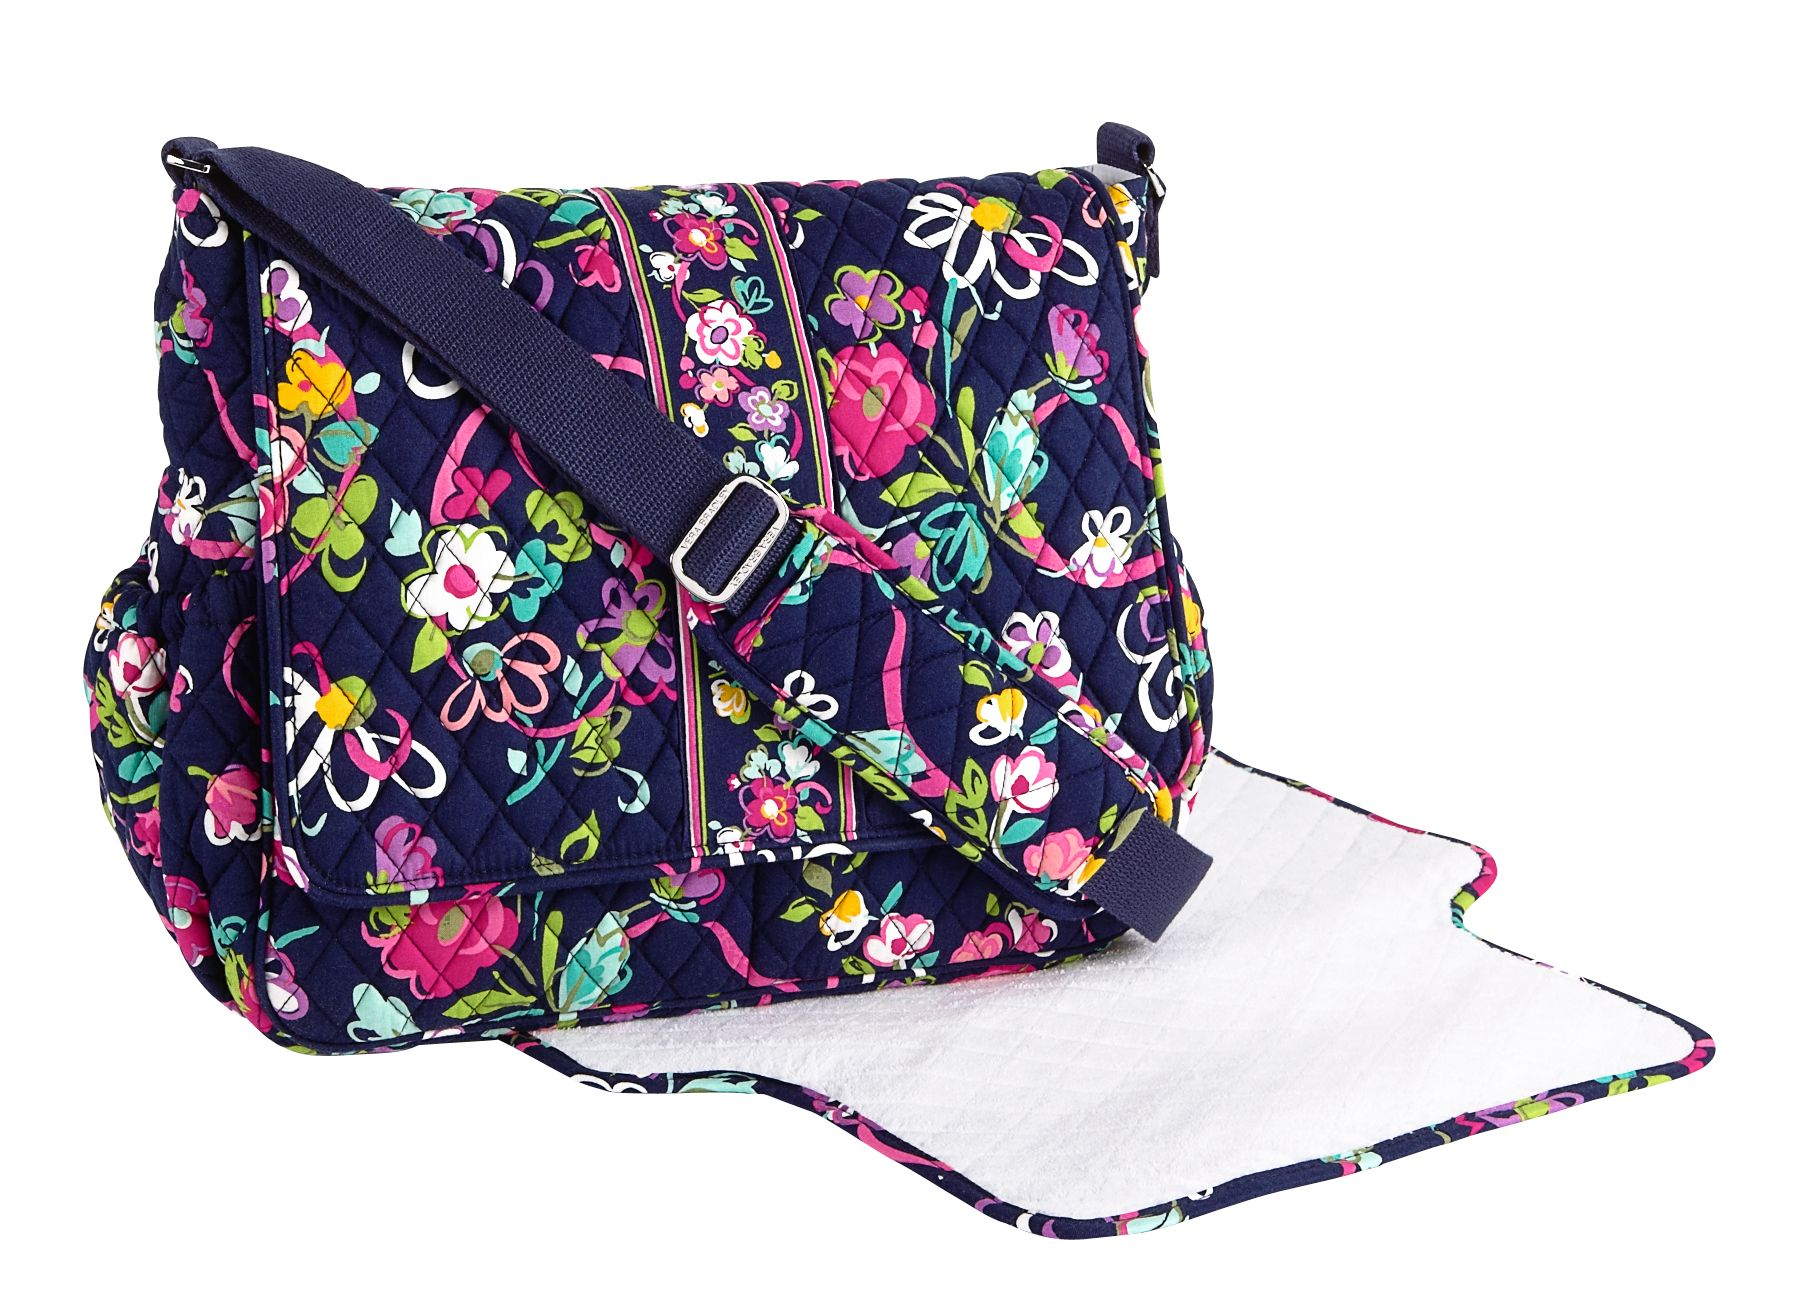 vera bradley flap shoulder bag review jenna shoulder bag. Black Bedroom Furniture Sets. Home Design Ideas